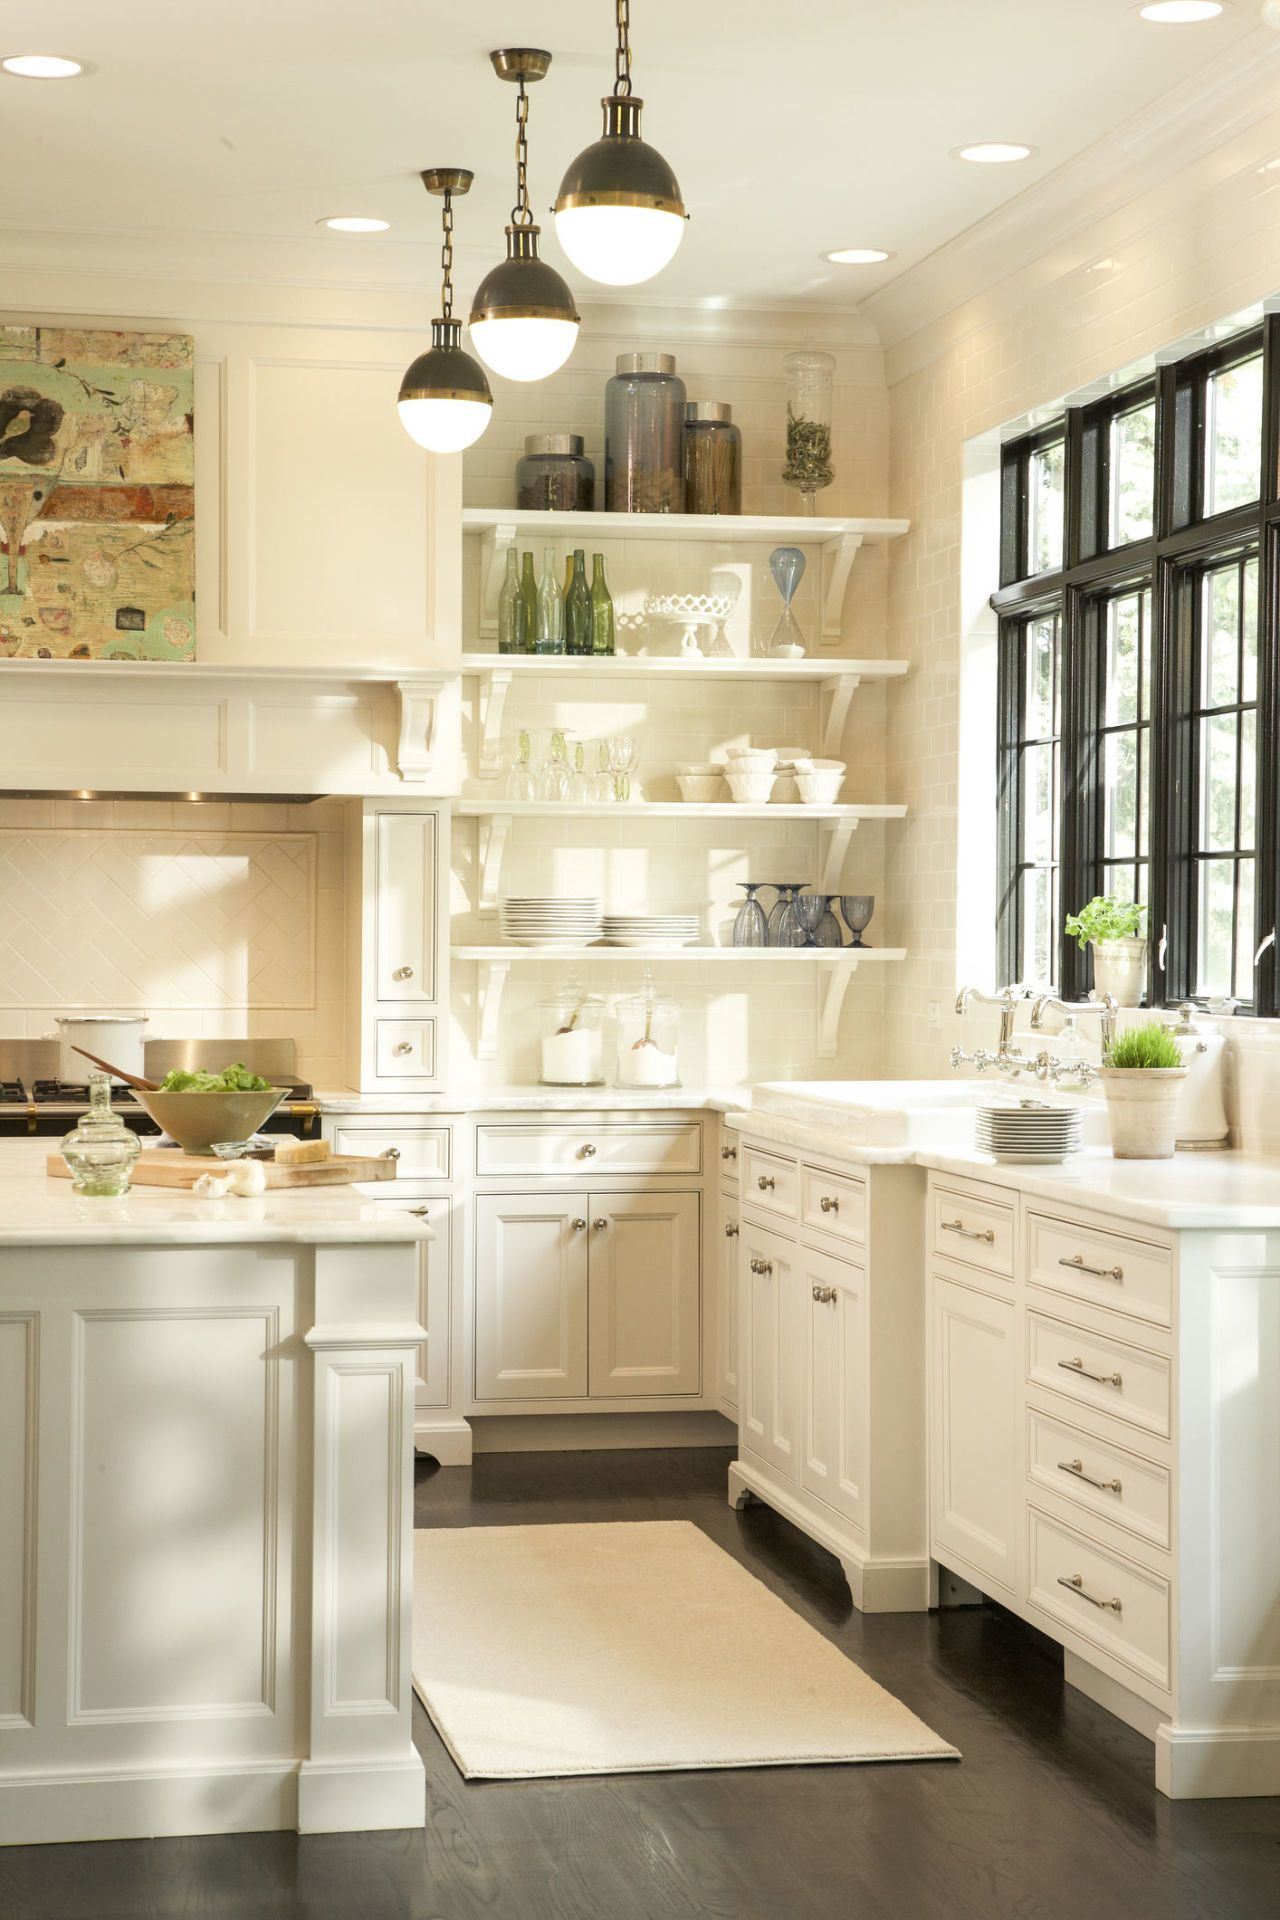 The Problem With All-White Kitchens That No One Will Tell You About ...